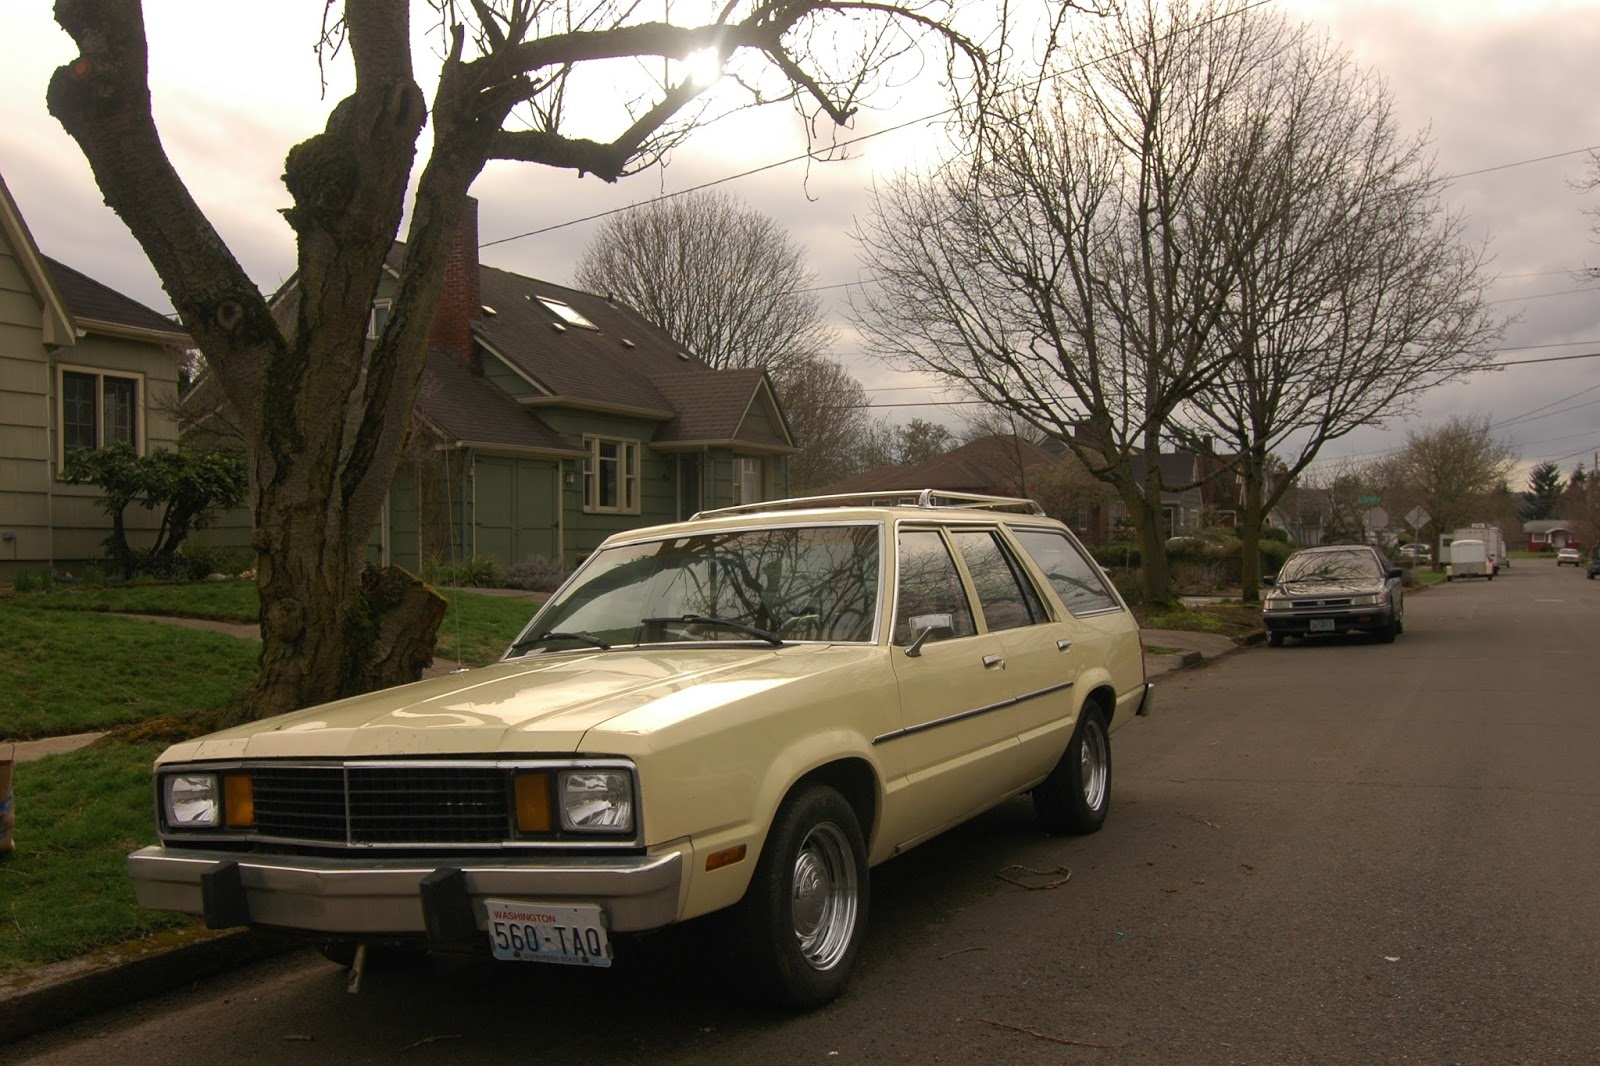 OLD PARKED CARS.: 1979 Ford Fairmont Wagon.